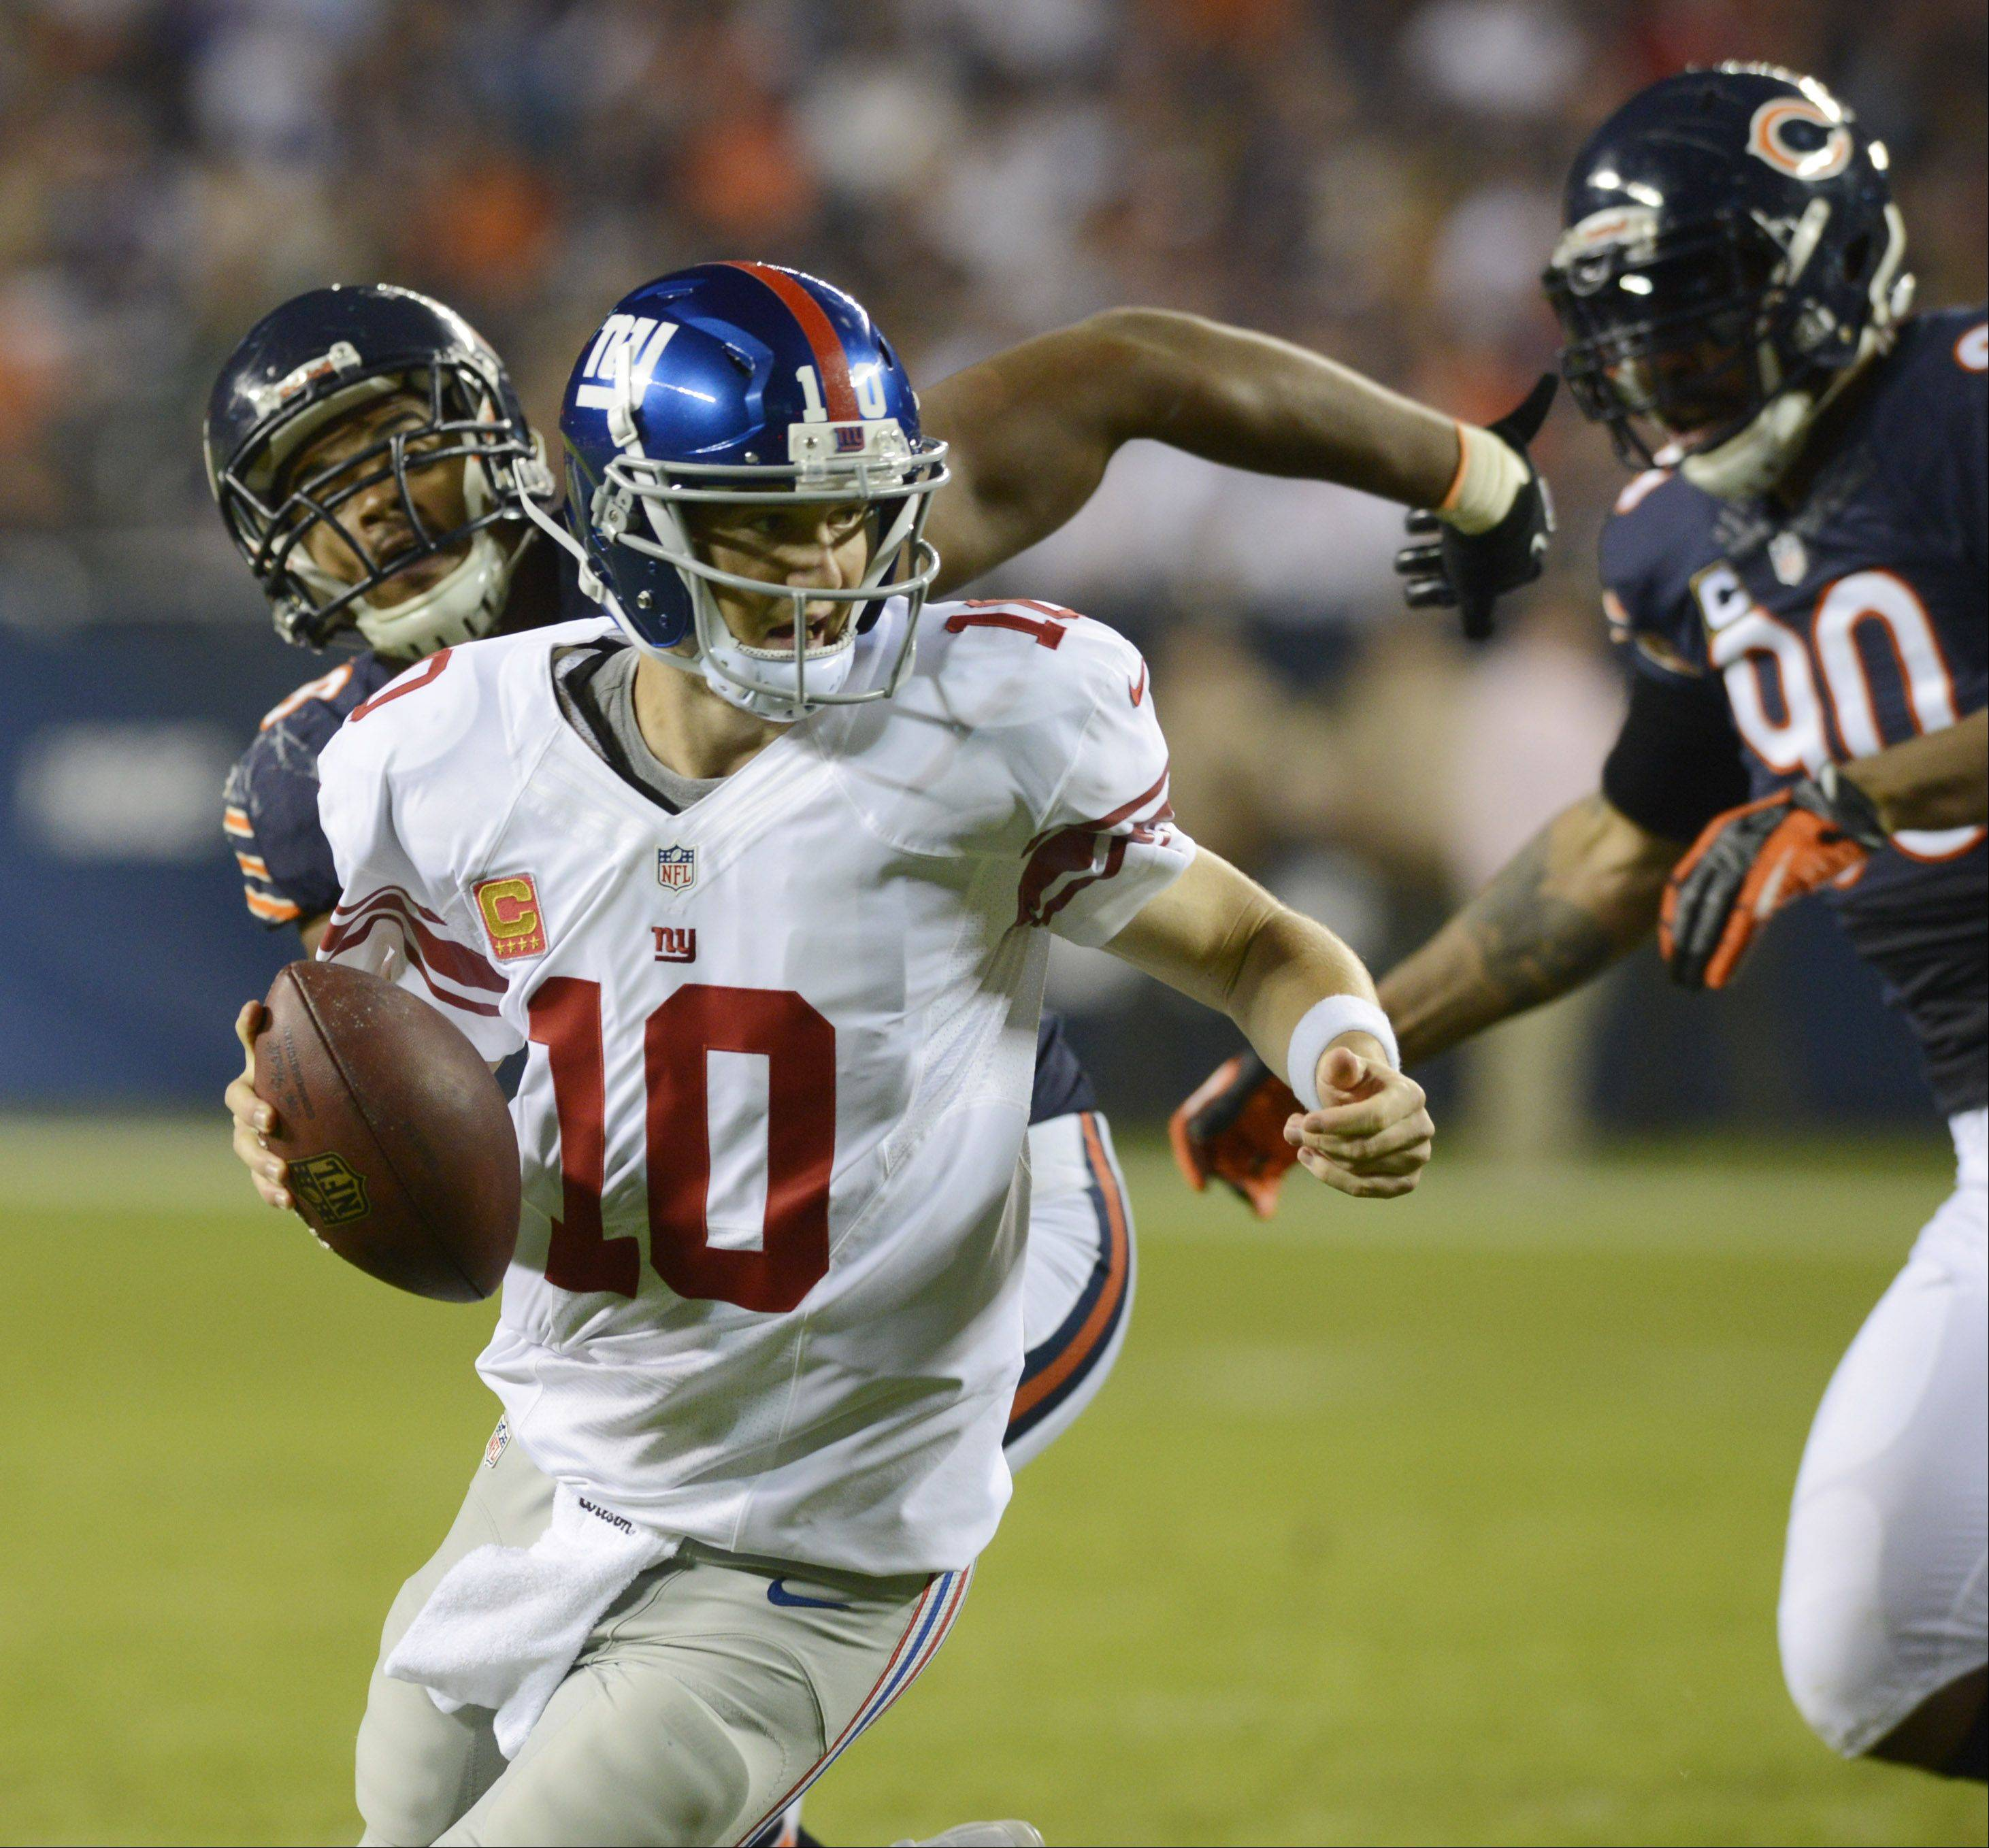 New York Giants quarterback Eli Manning eludes Chicago Bears defensive ends Corey Wootton, left, and Julius Peppers in Thursday's game. The Bears defense recorded only 1 sack.